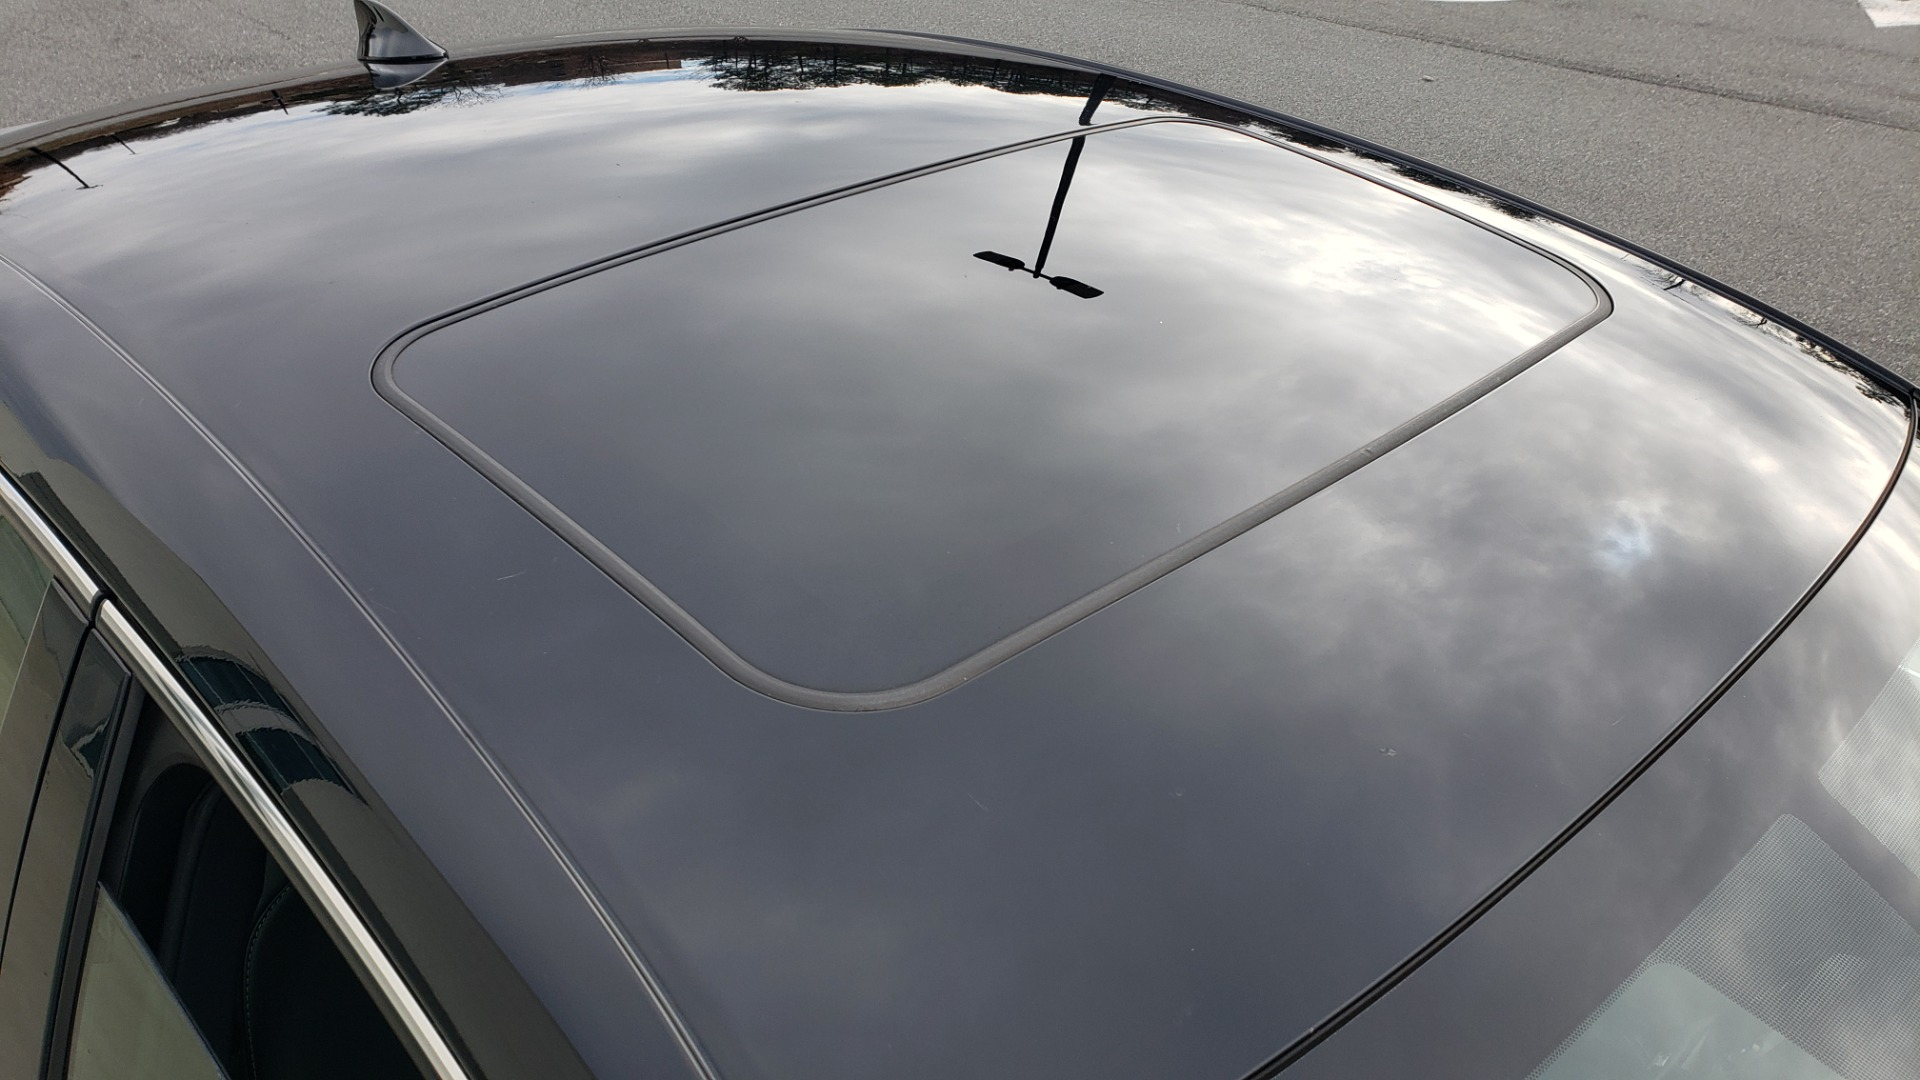 Used 2015 Lexus IS 250 F-SPORT / BLIND SPOT MON / SUNROOF / REARVIEW for sale Sold at Formula Imports in Charlotte NC 28227 8